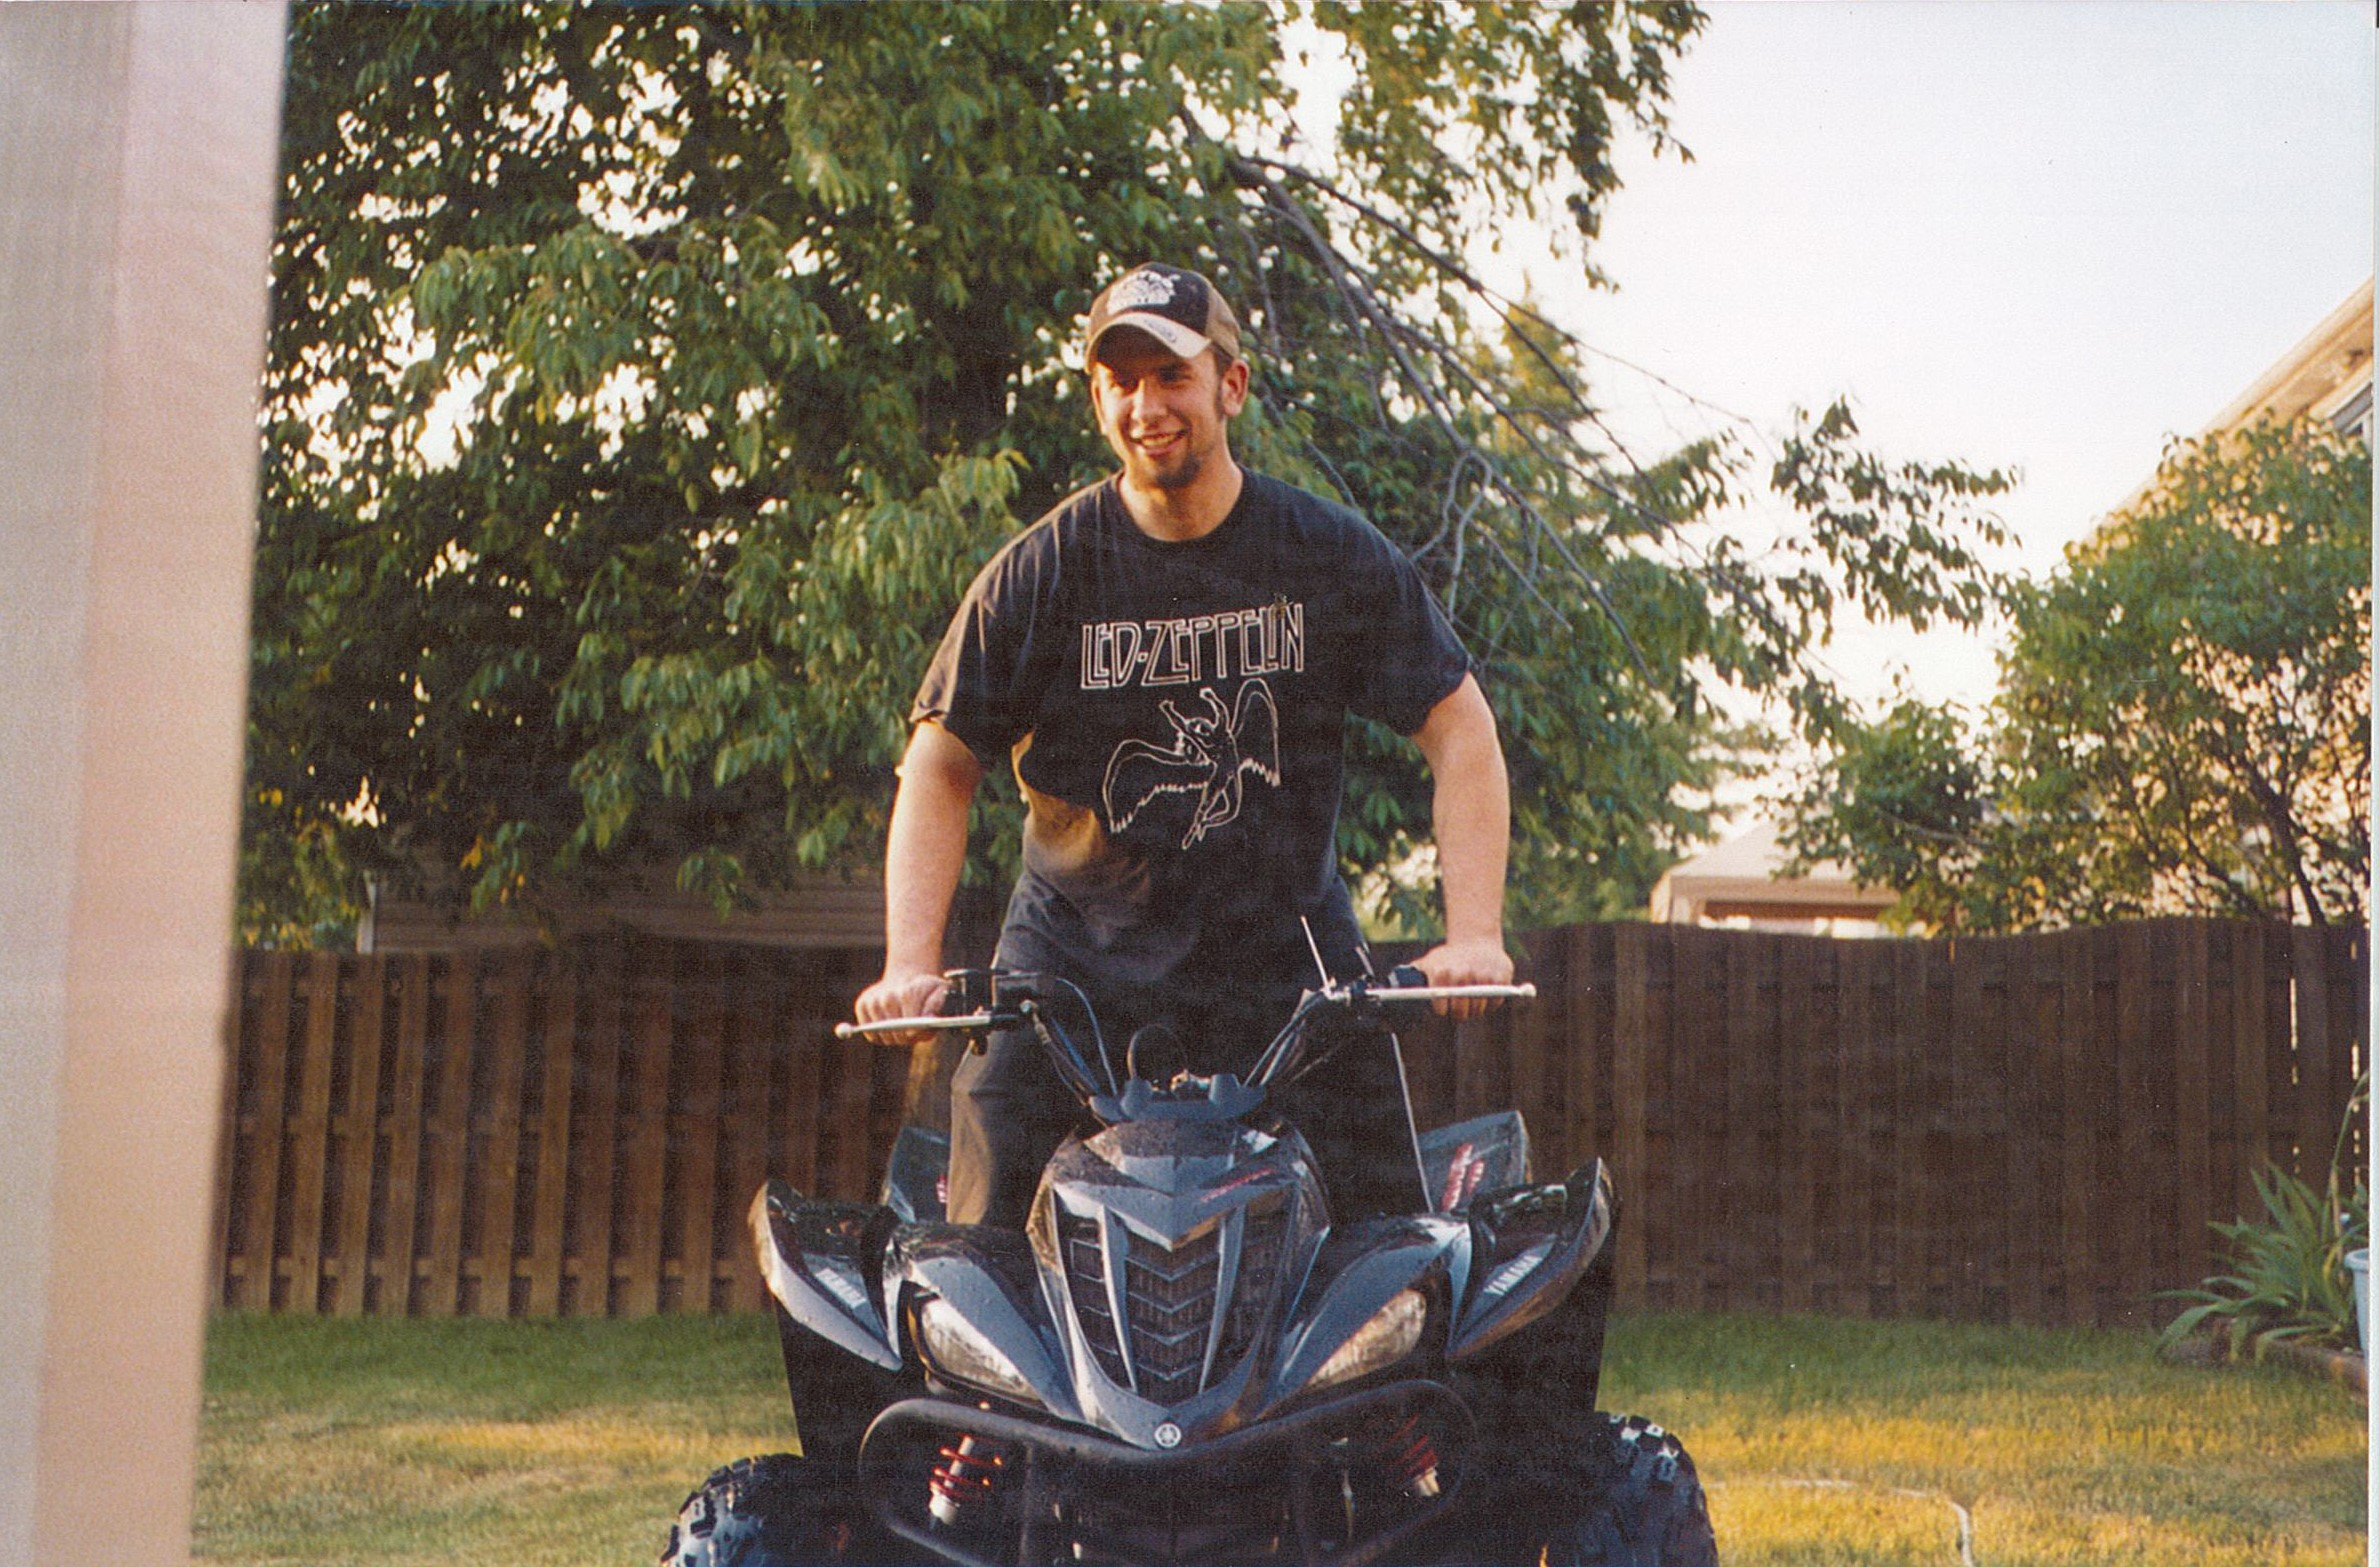 Matthew Orlowski, who died five years ago at age 26, loved to ride ATVs.